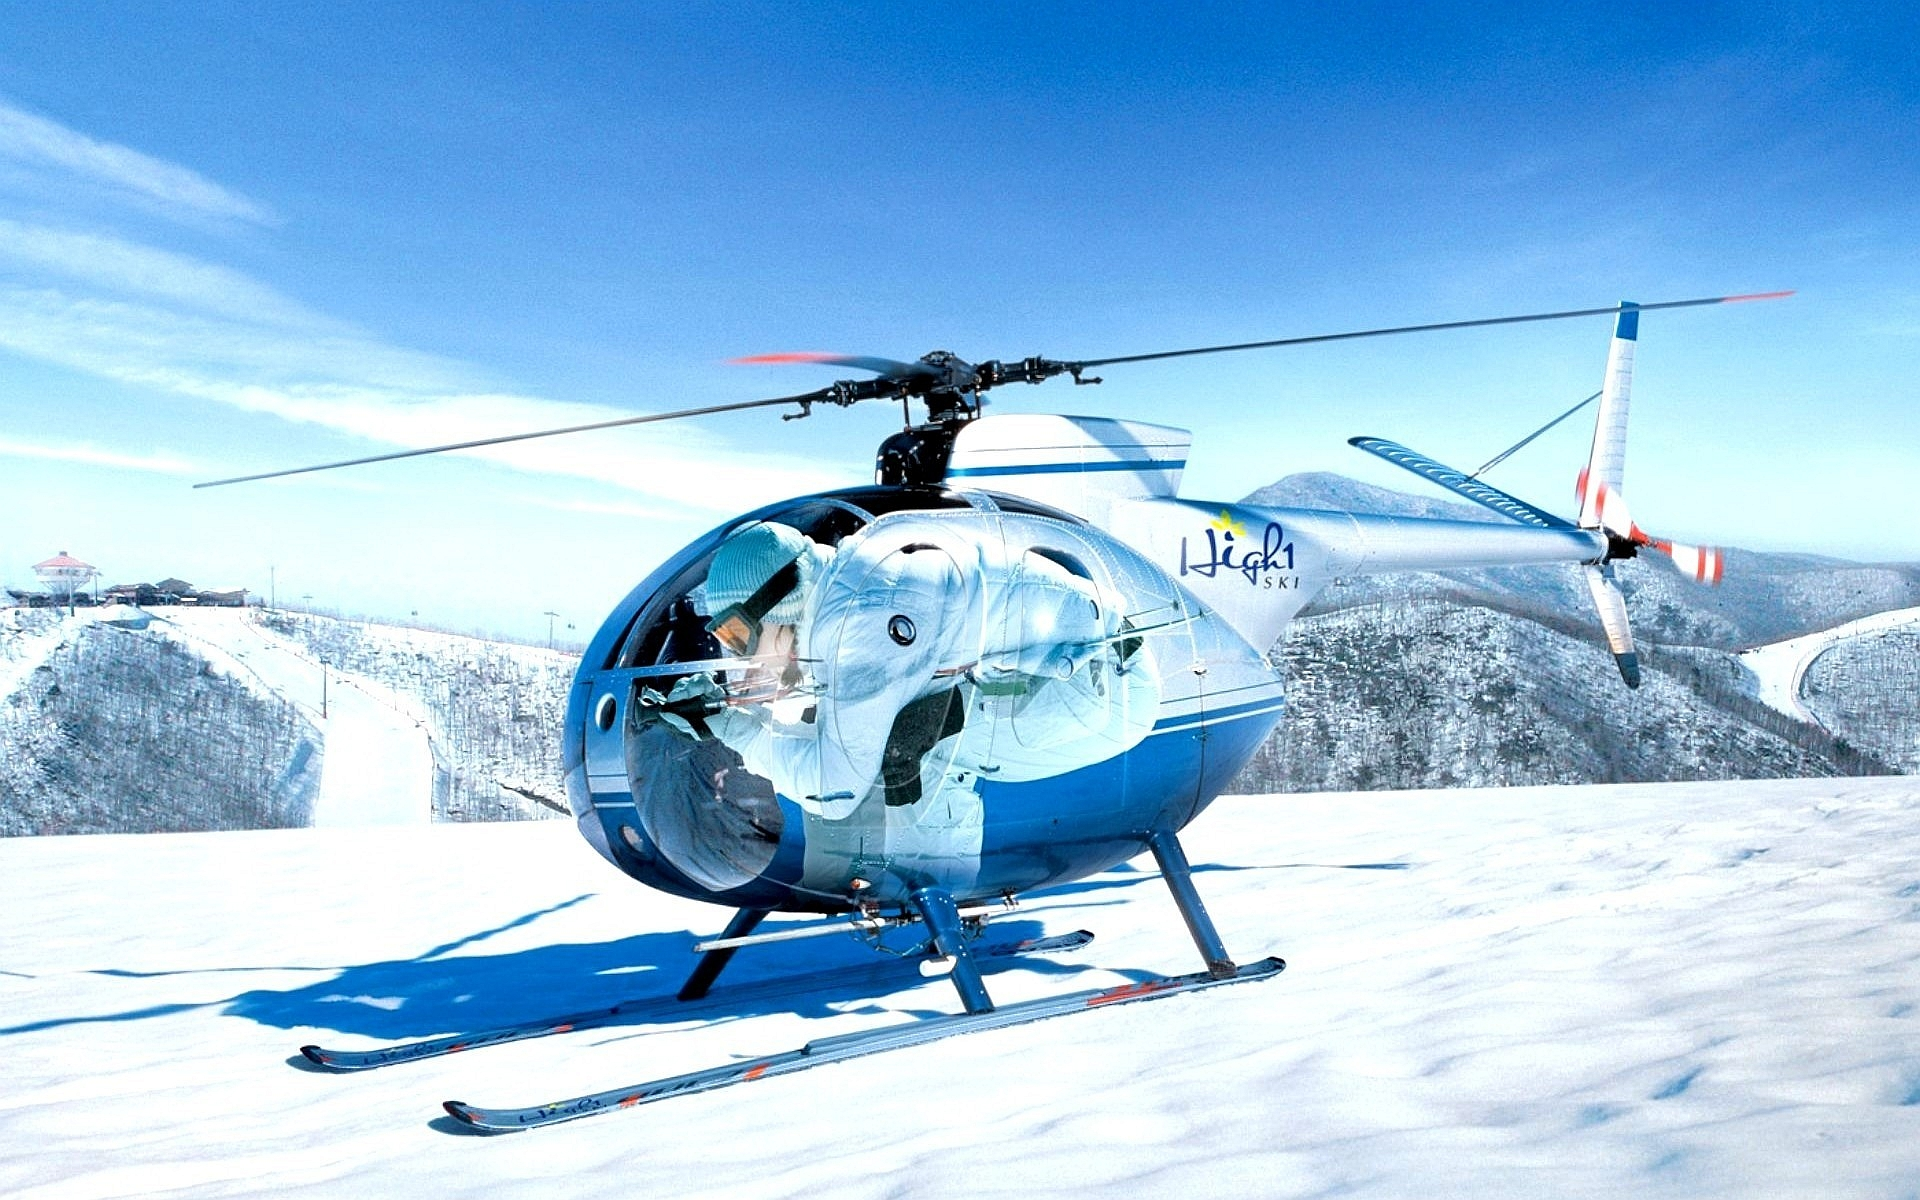 Helicopters - helicopter Wallpapers - HD Wallpapers 95979